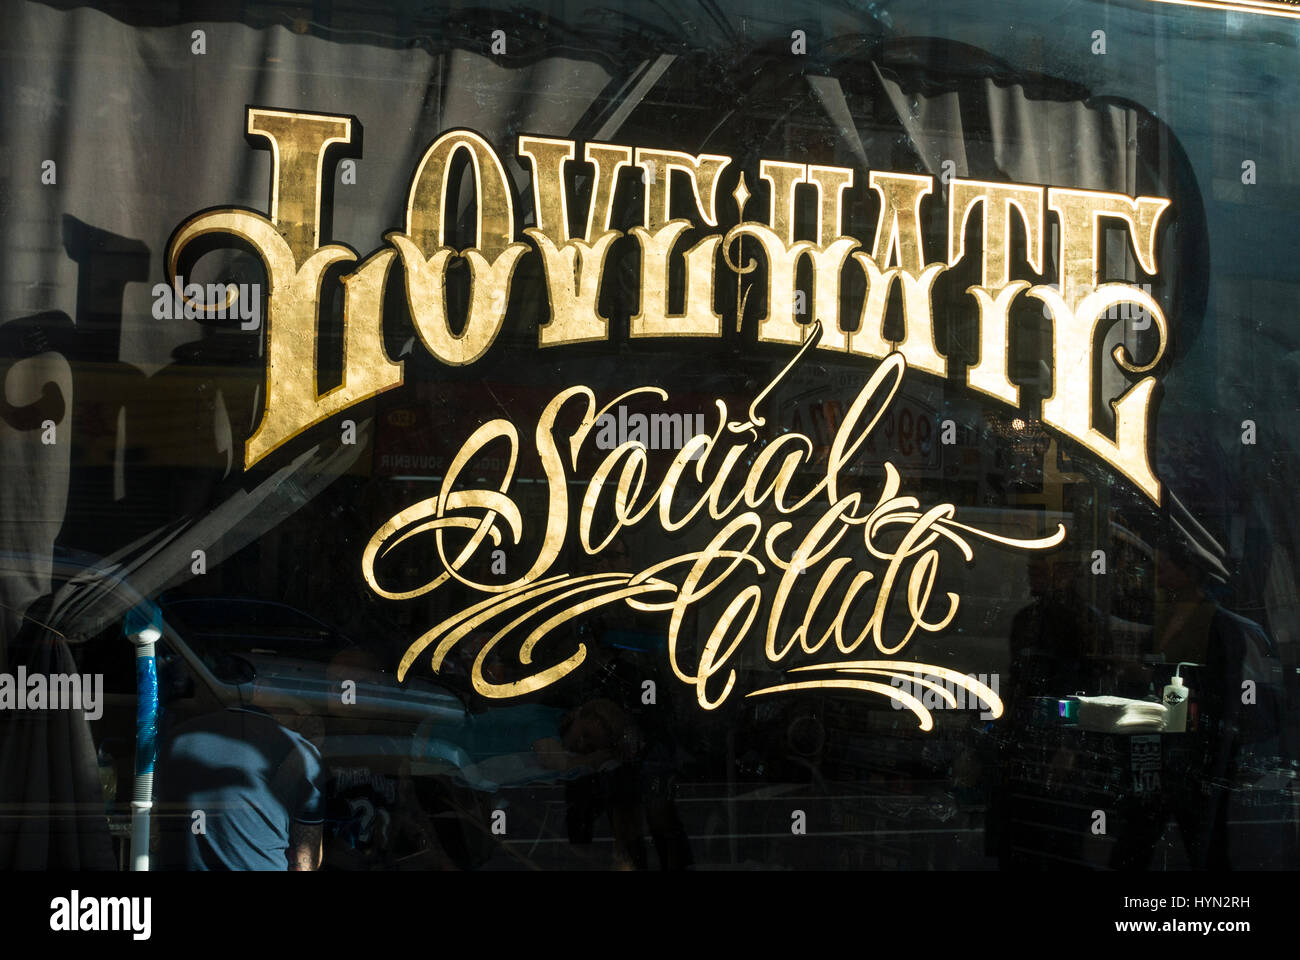 Love Hate Social Club, a tattoo parlor in Lower Manhattan - Stock Image